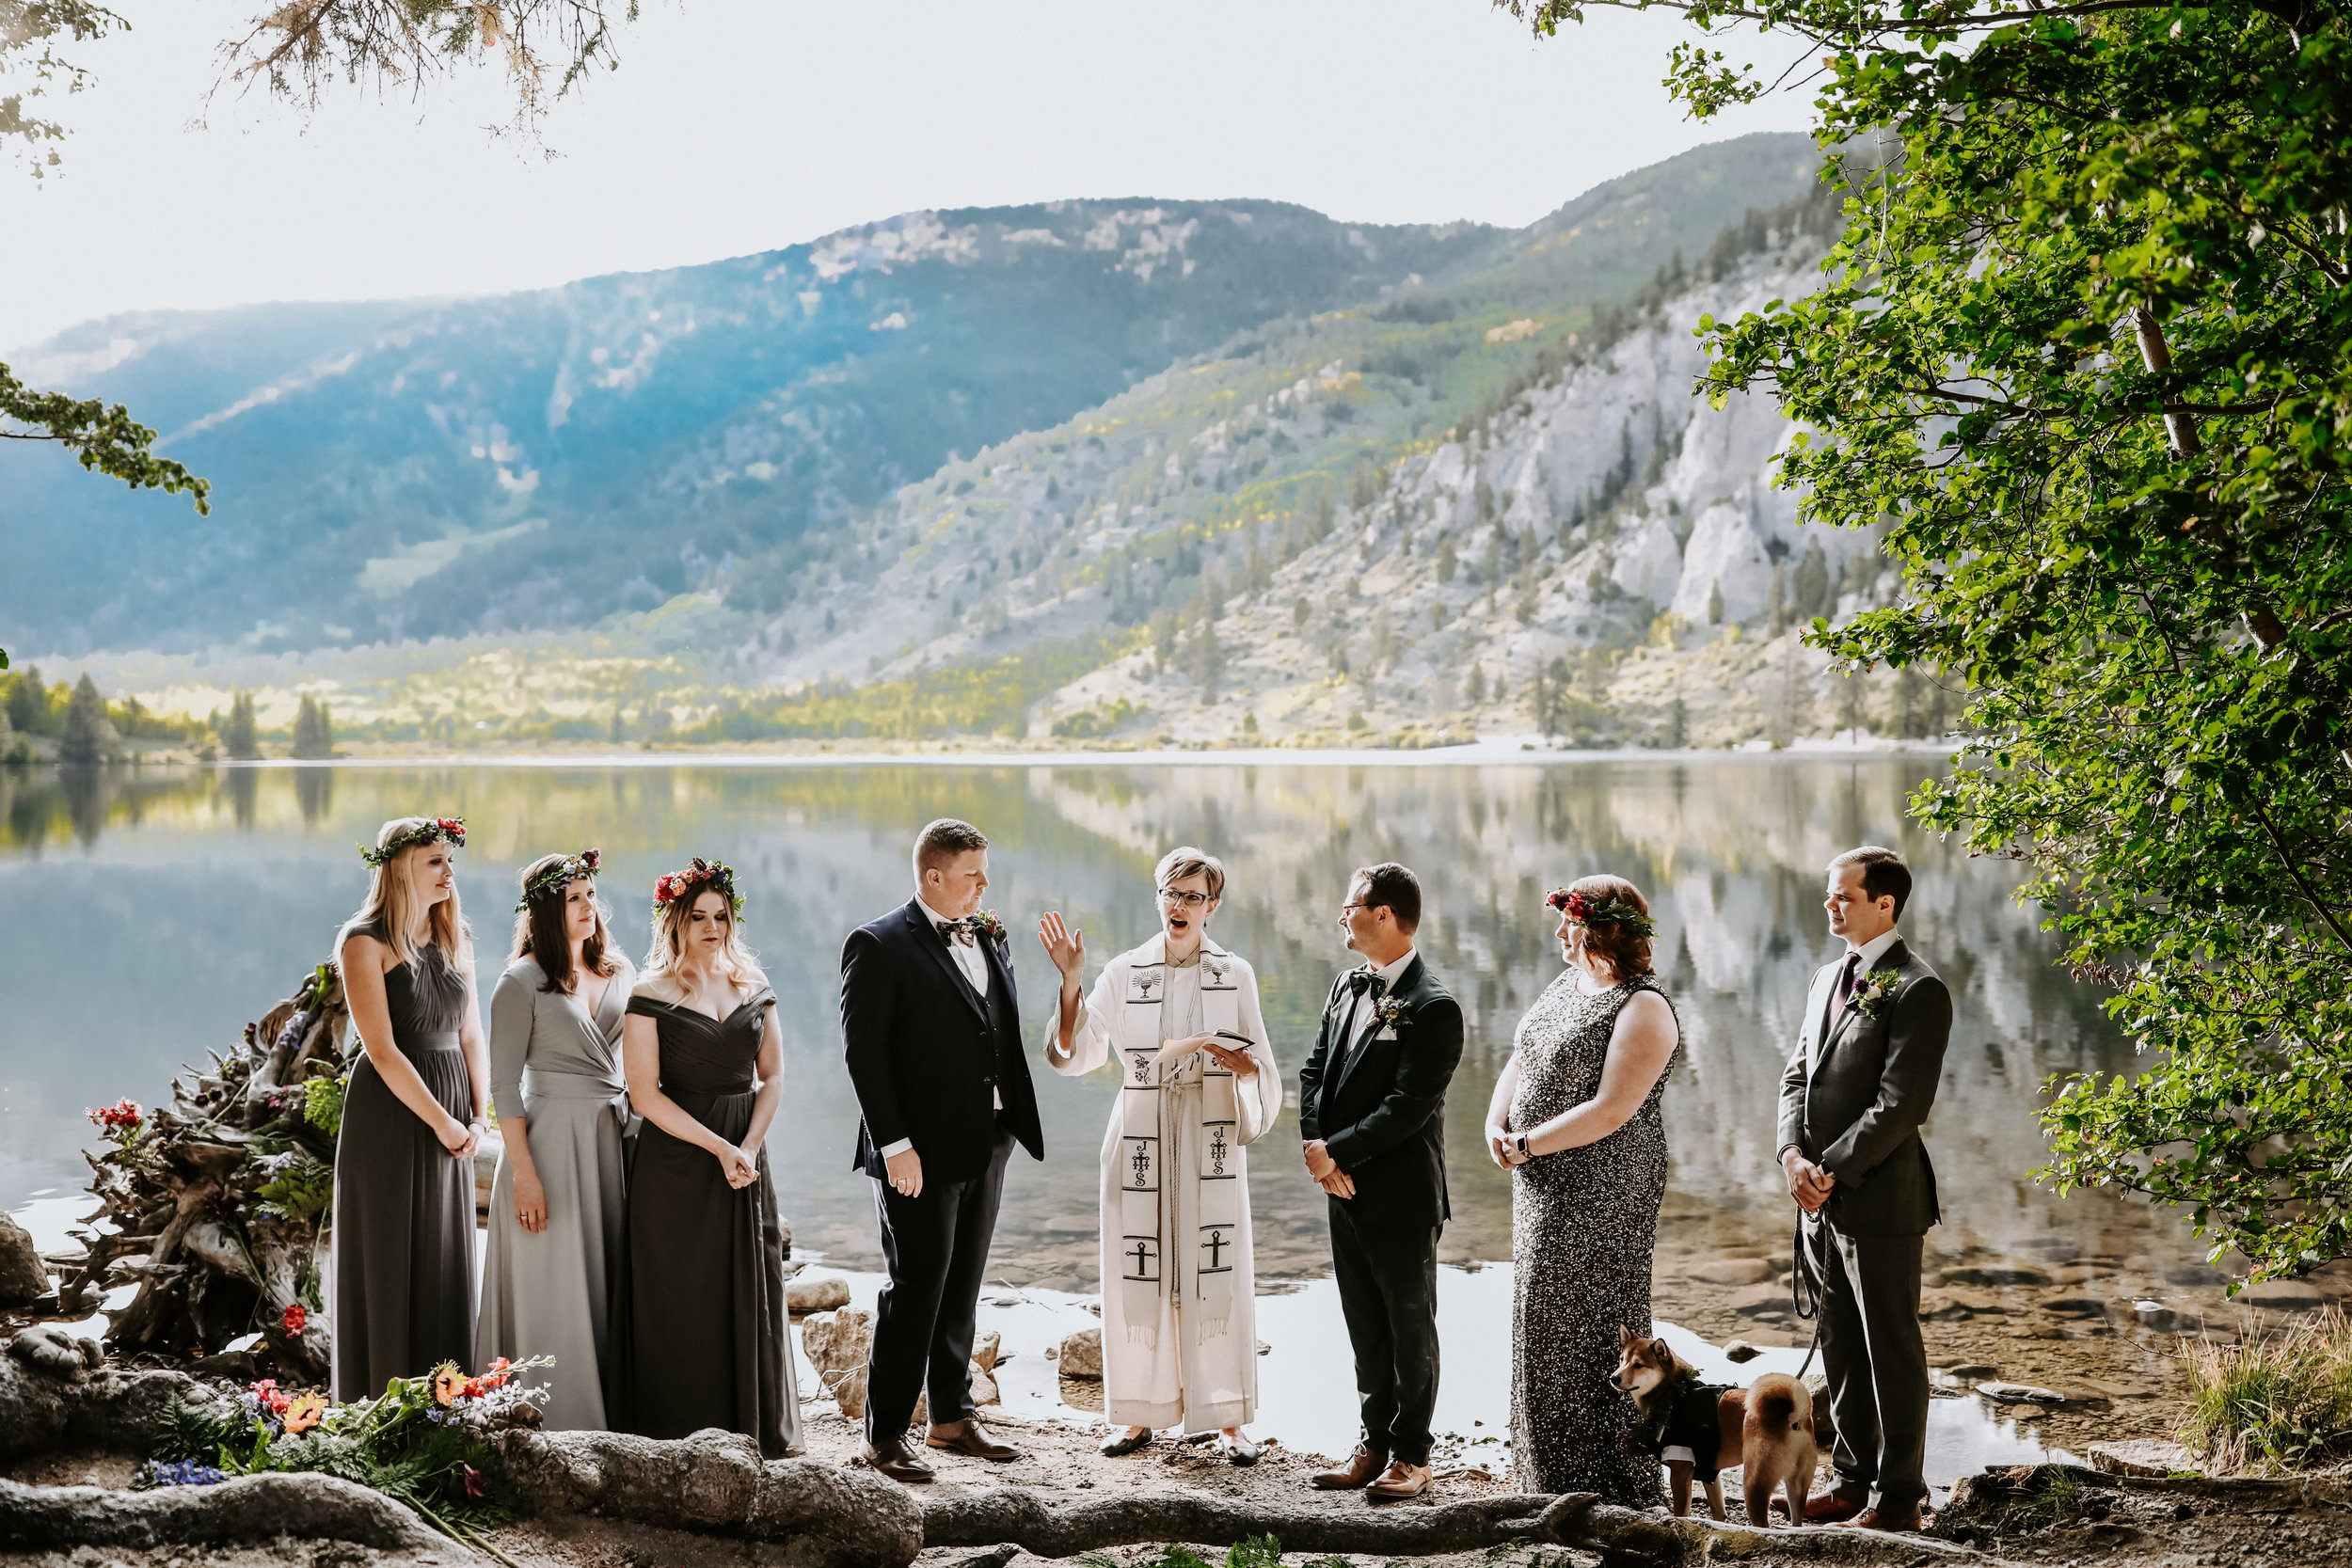 Austin and I's Wedding in Colorado at Cottonwood Lake